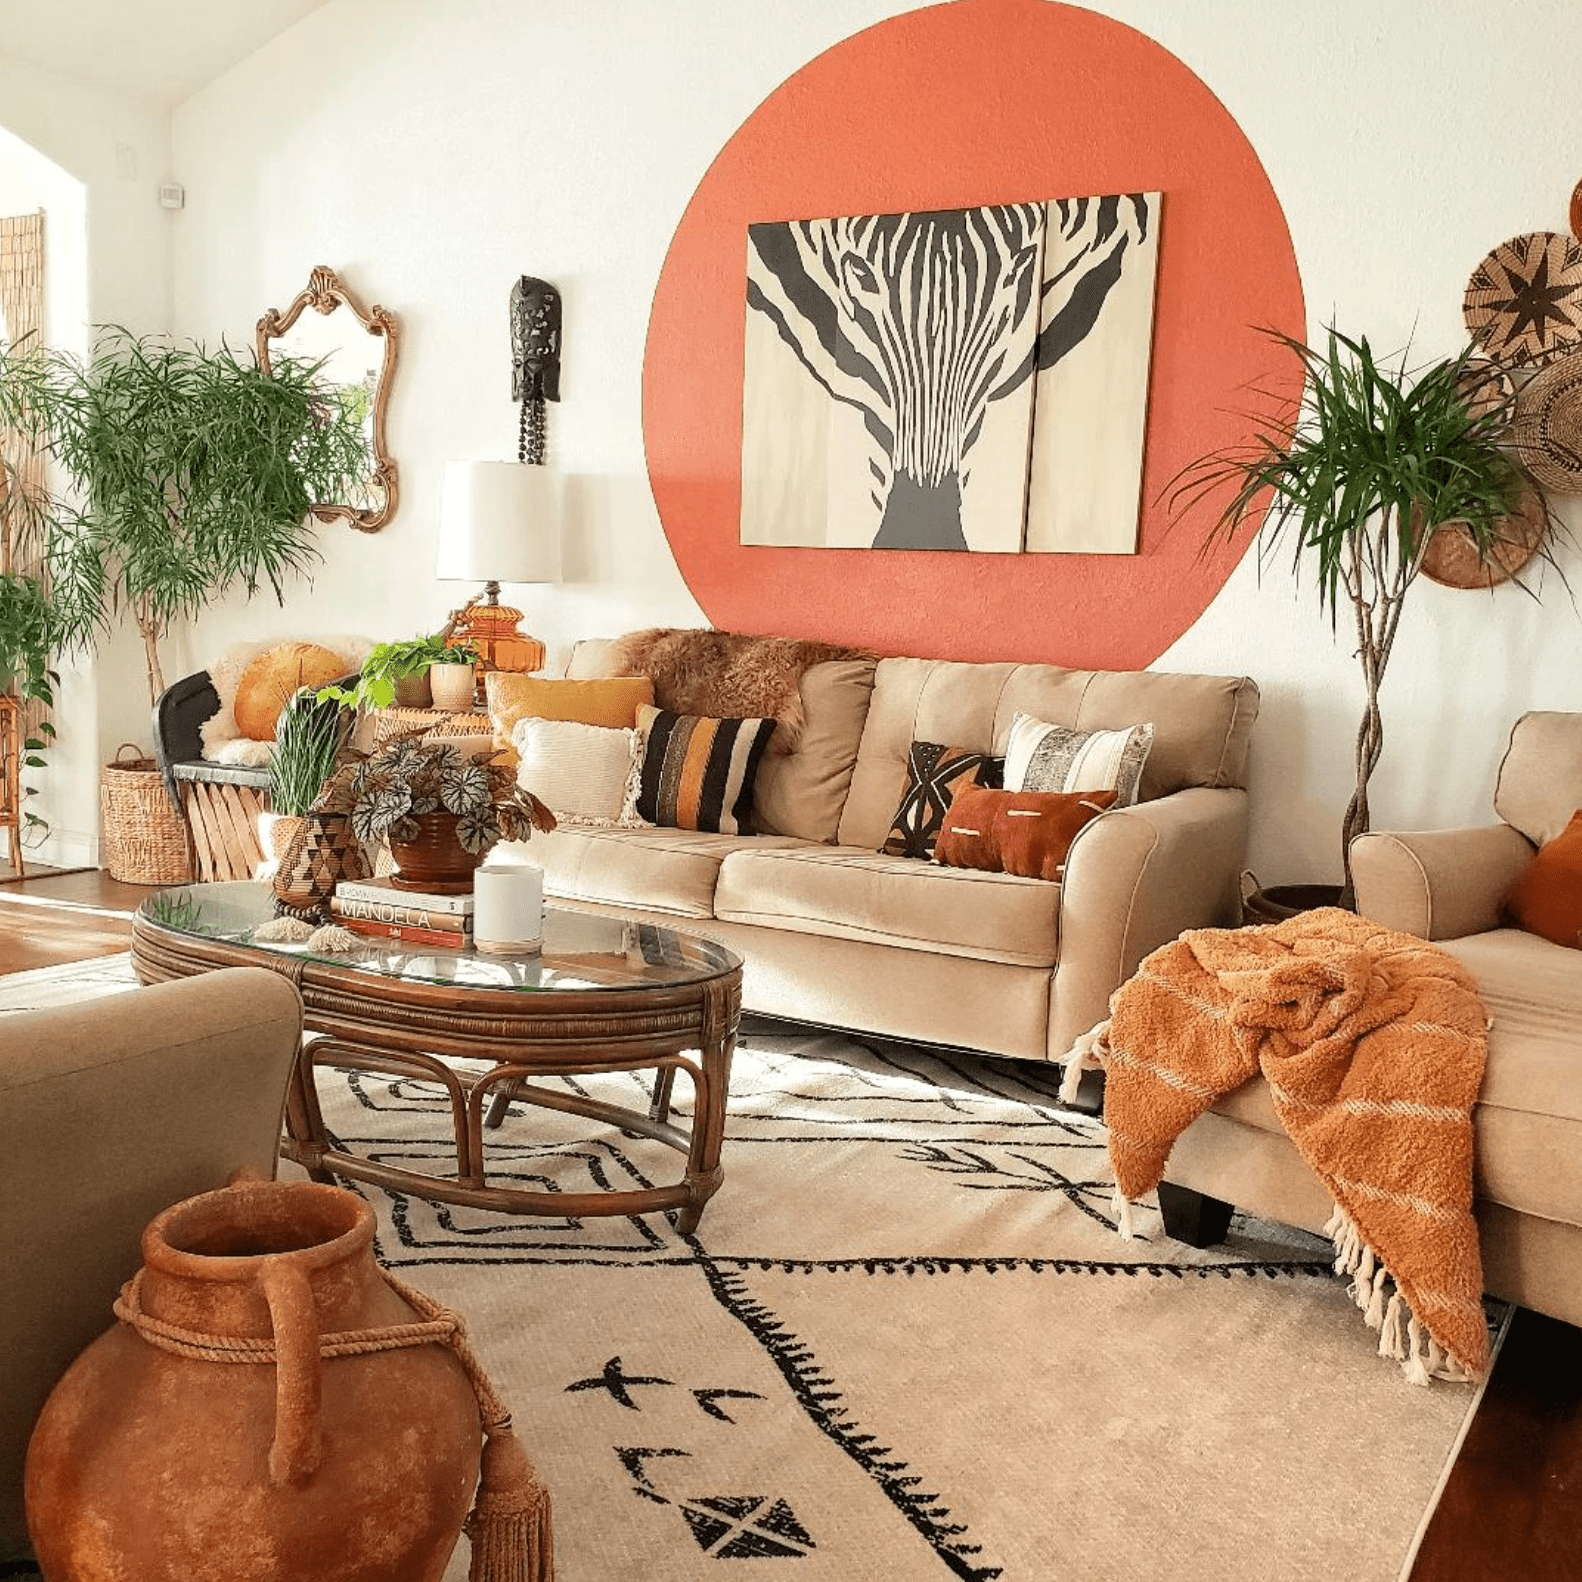 A living room full of earthy colors and prints